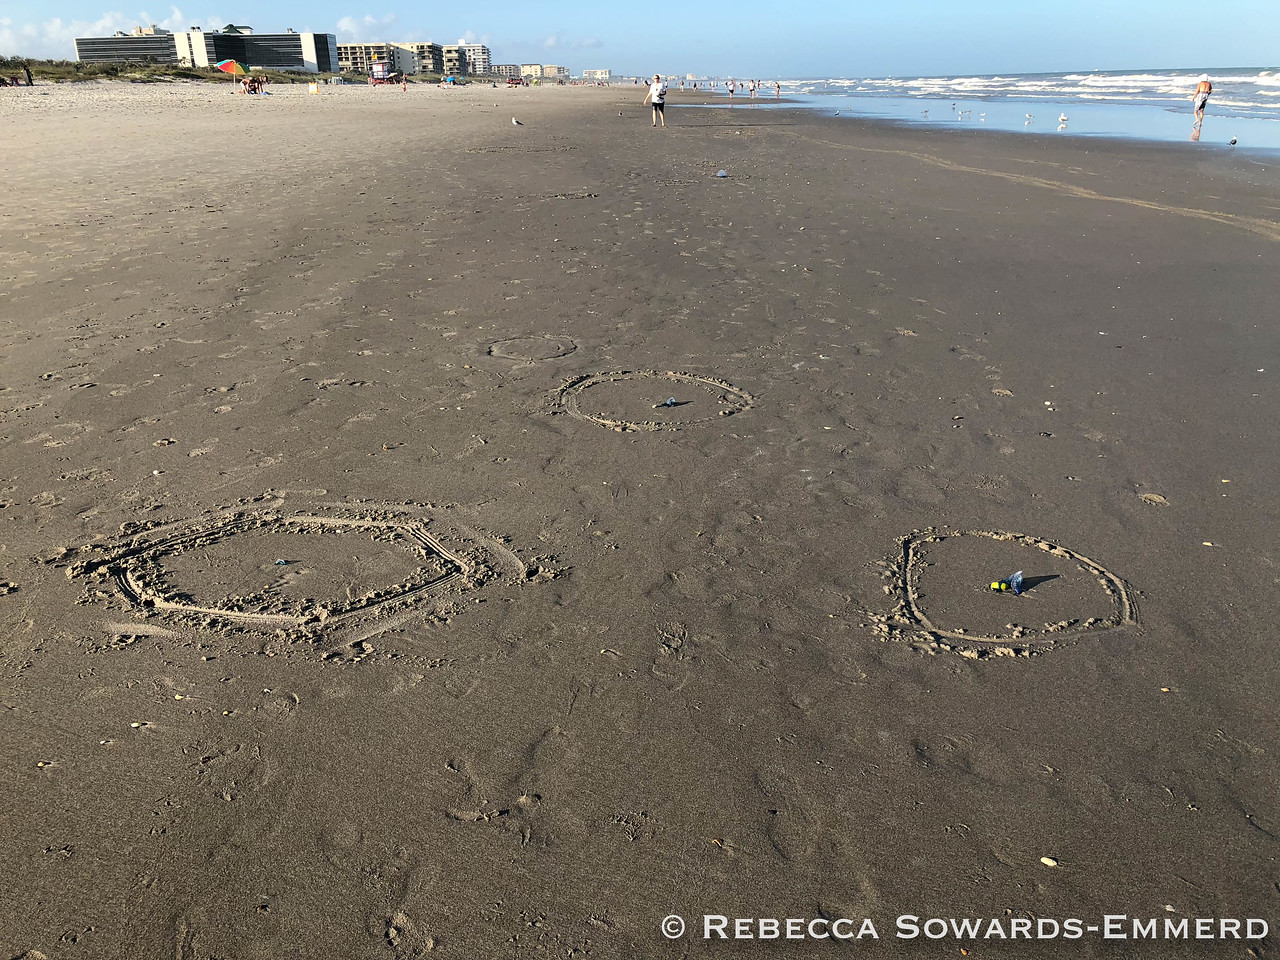 A kid had helpfully circled all of the beached jellyfish. :)